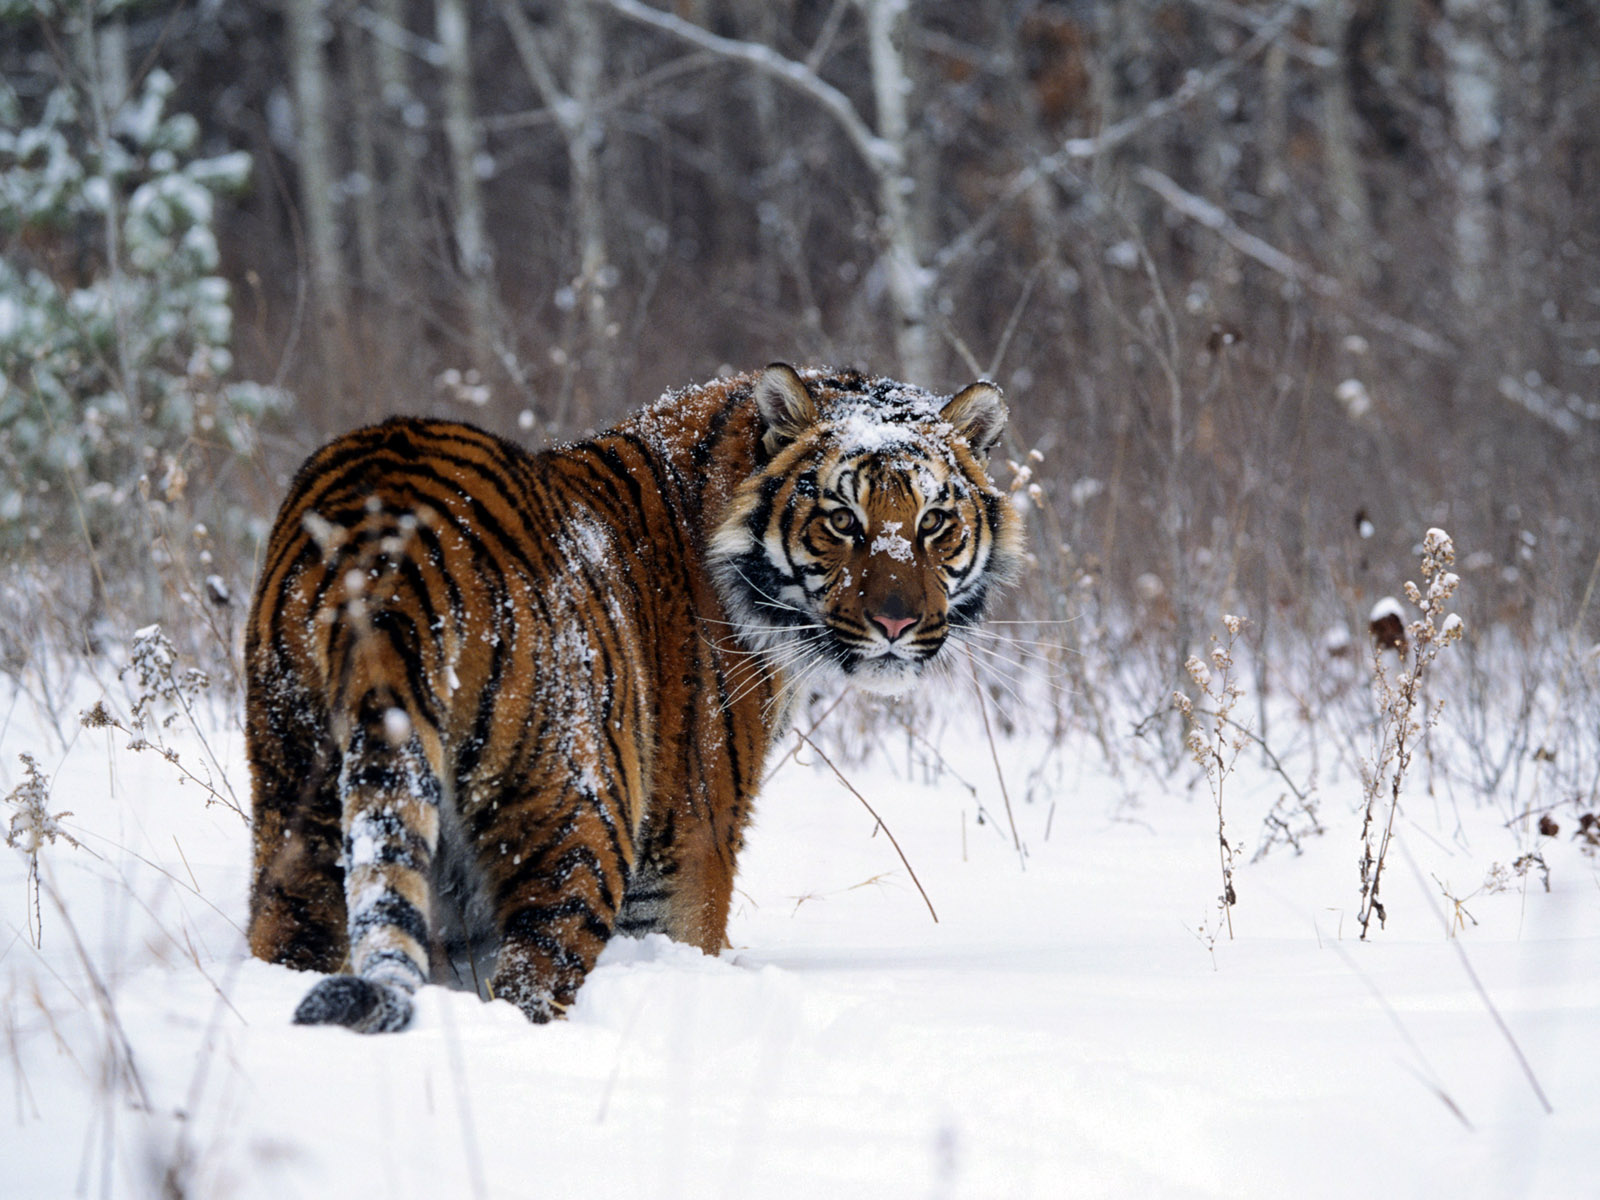 Tiger in Snow 275.36 Kb